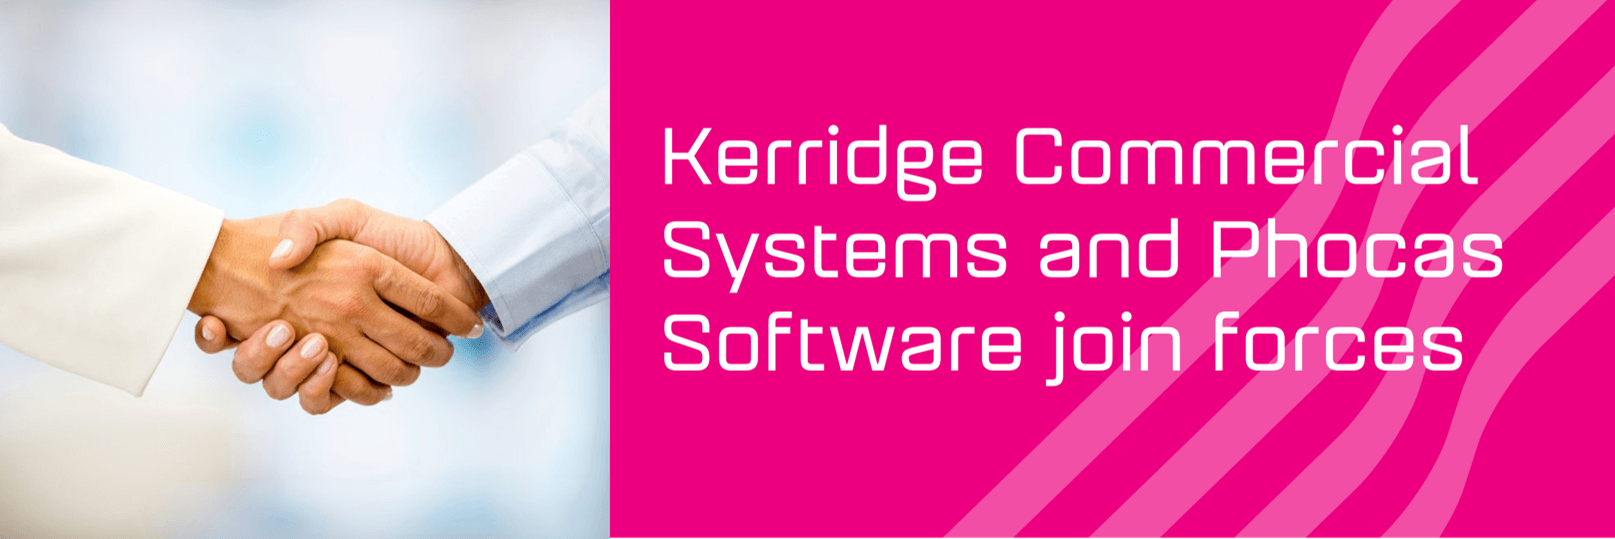 Kerridge CS and Phocas Software join forces